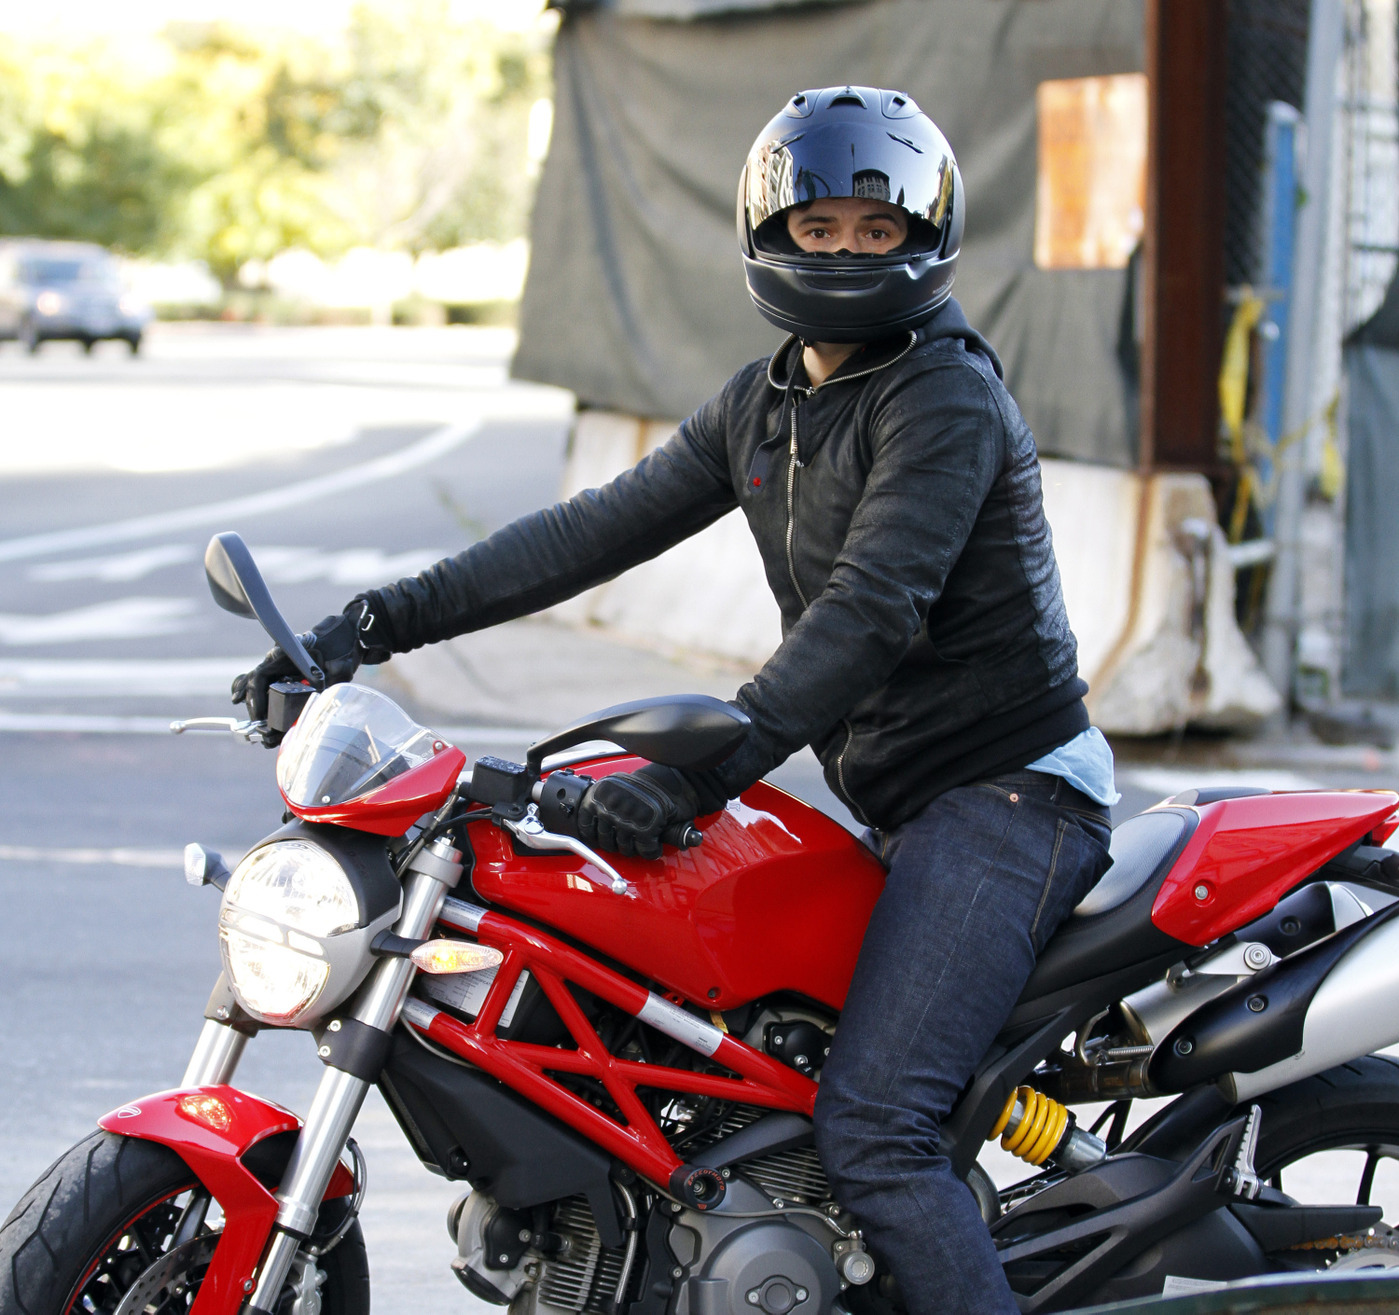 orlando bloom motorcycle